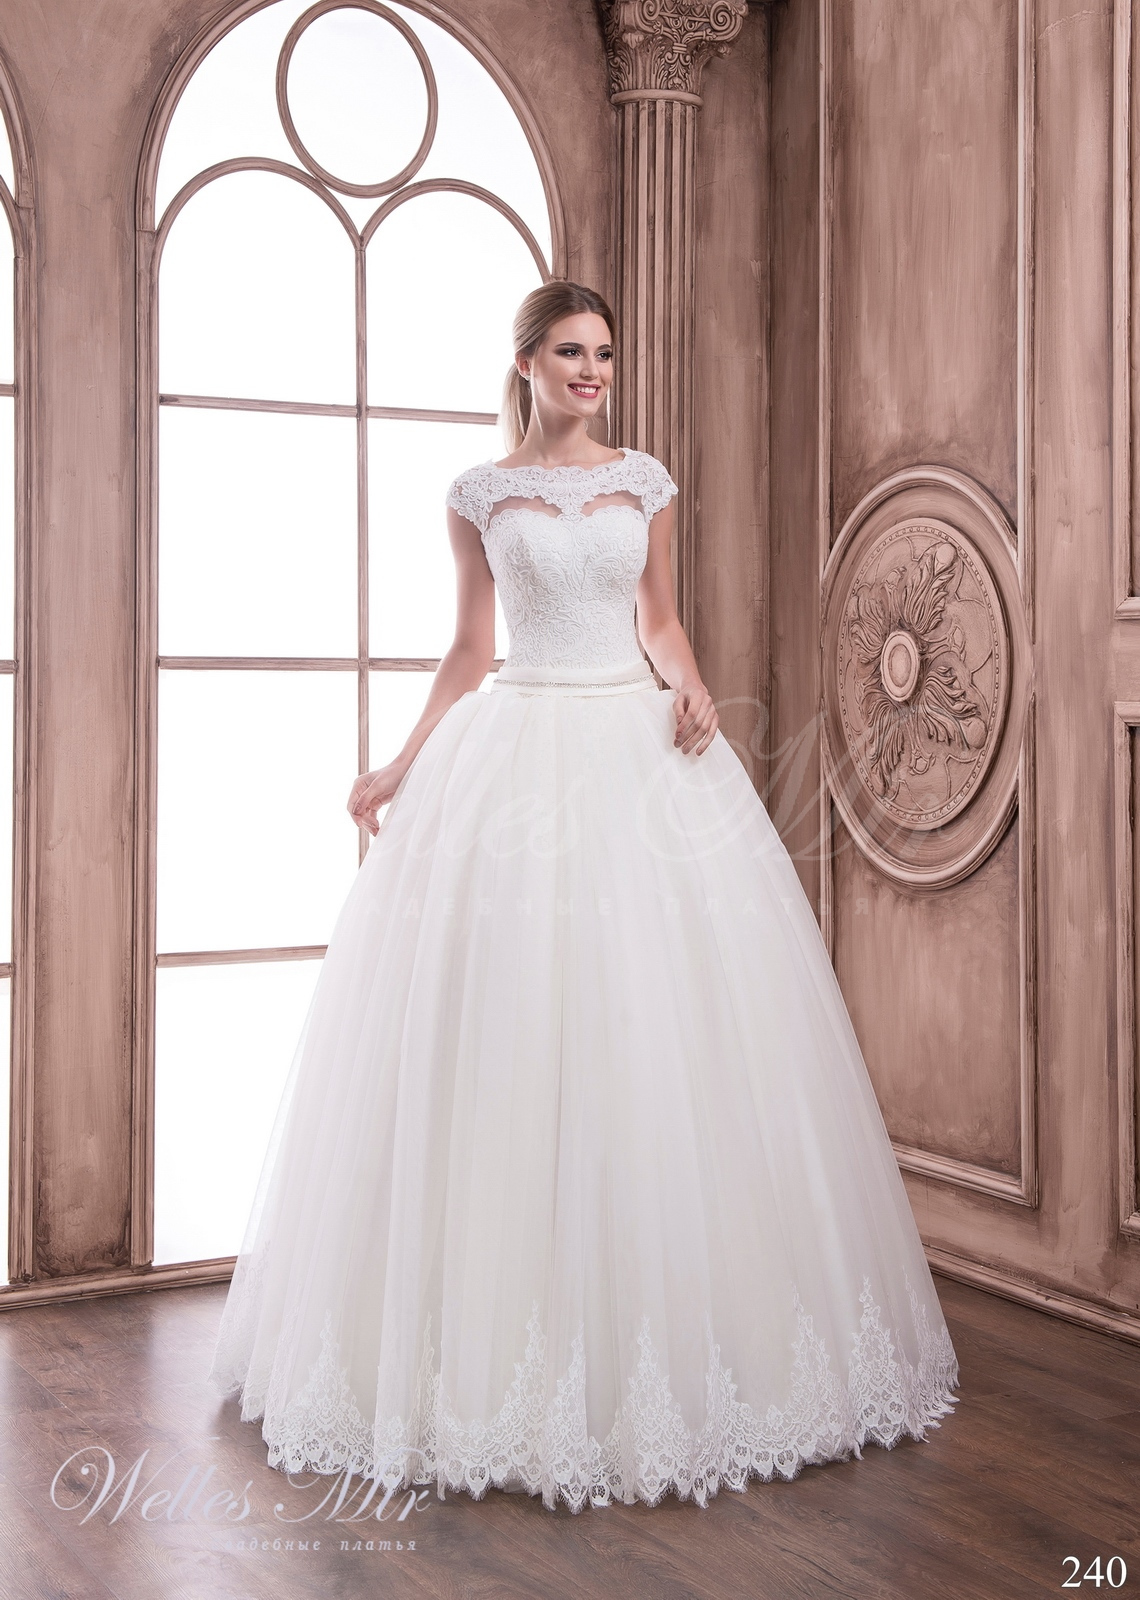 Wedding dresses 240